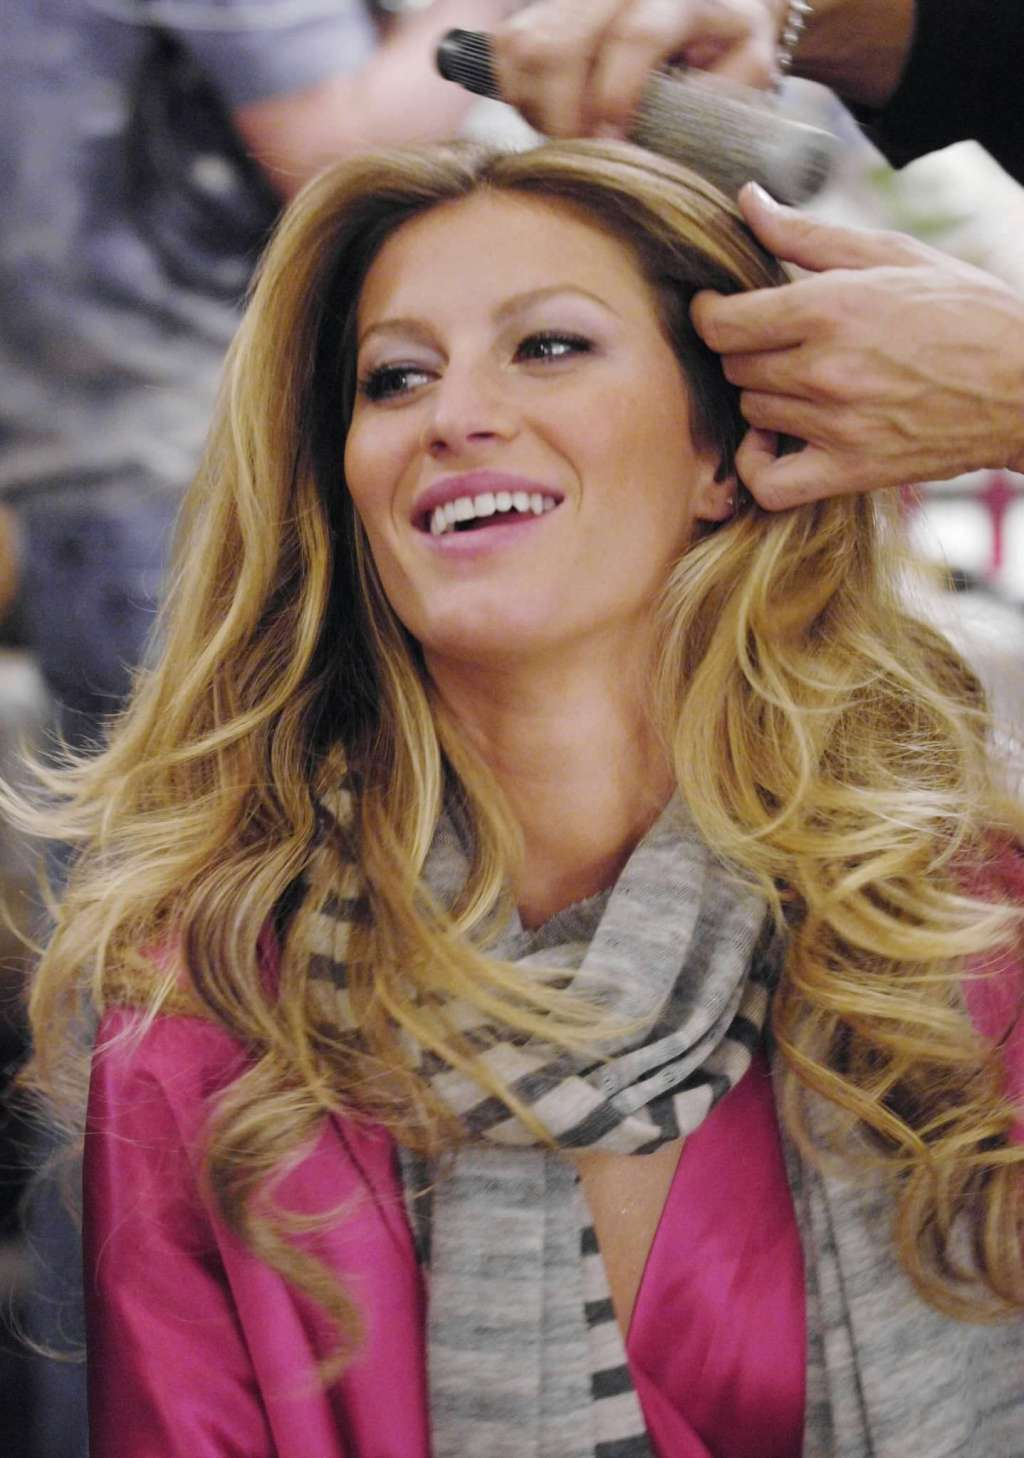 Gisele Bundchen – Backstage – Victoria's Secret Fashion Show 2006 [x 61]